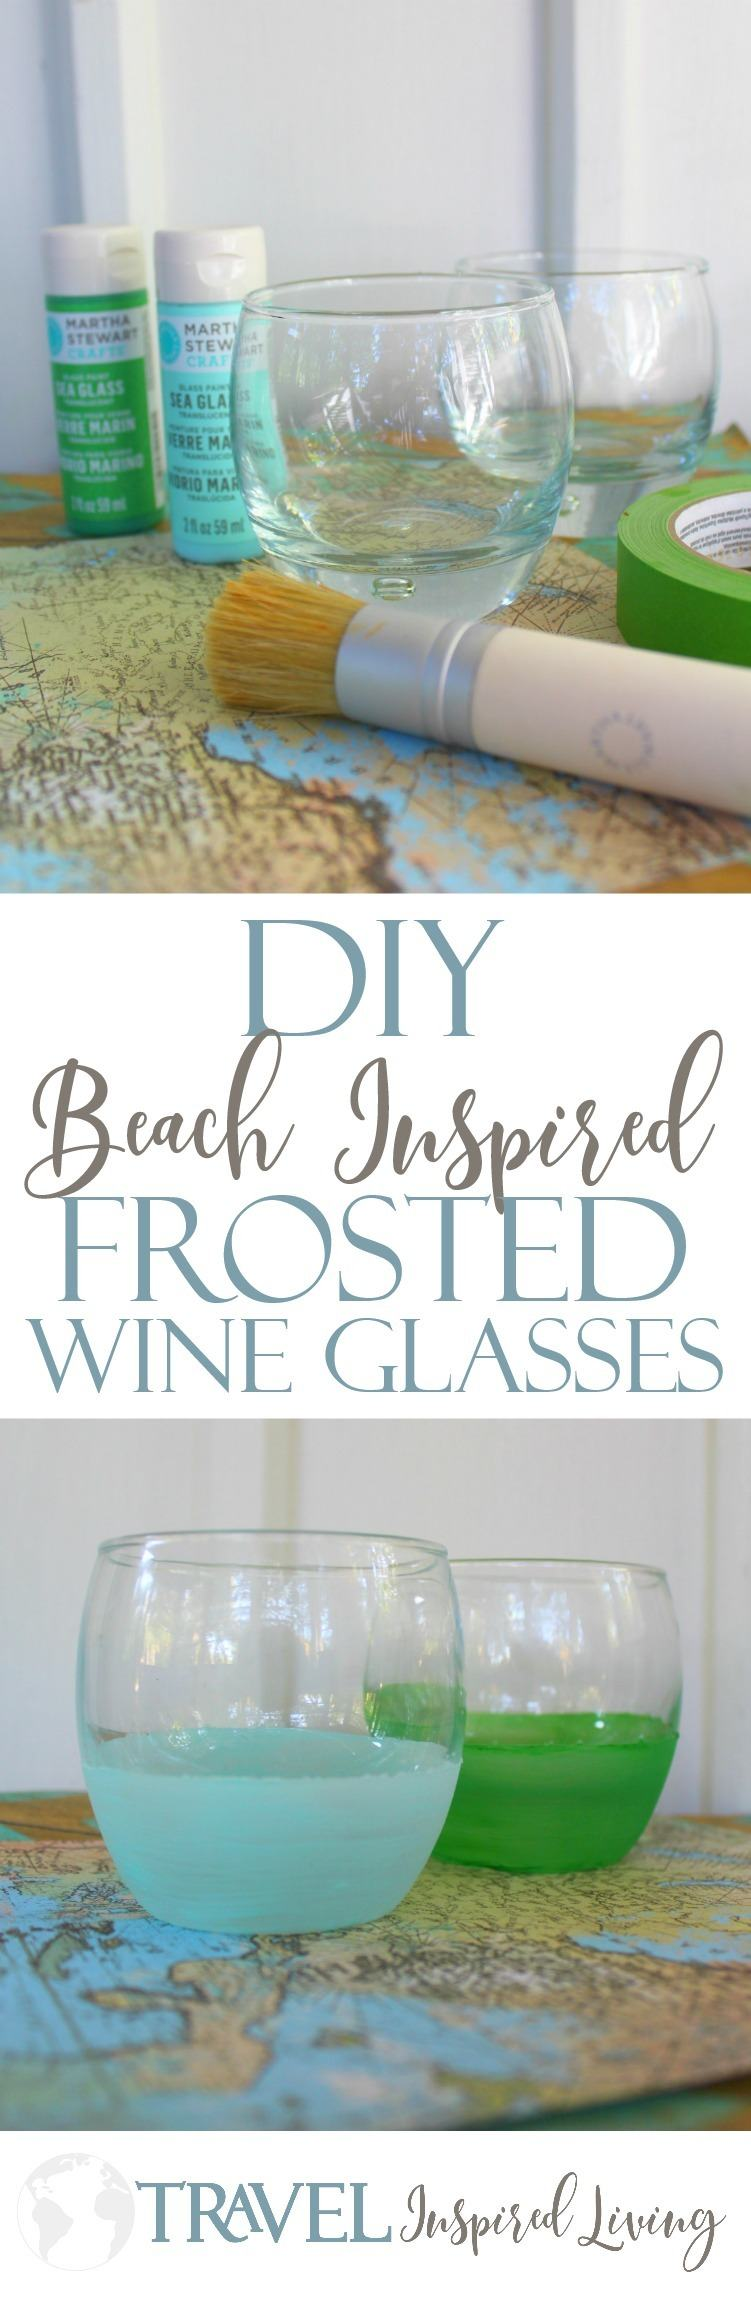 These DIY Beach Inspired Frosted Wine Glasses are super easy and inexpensive to make.